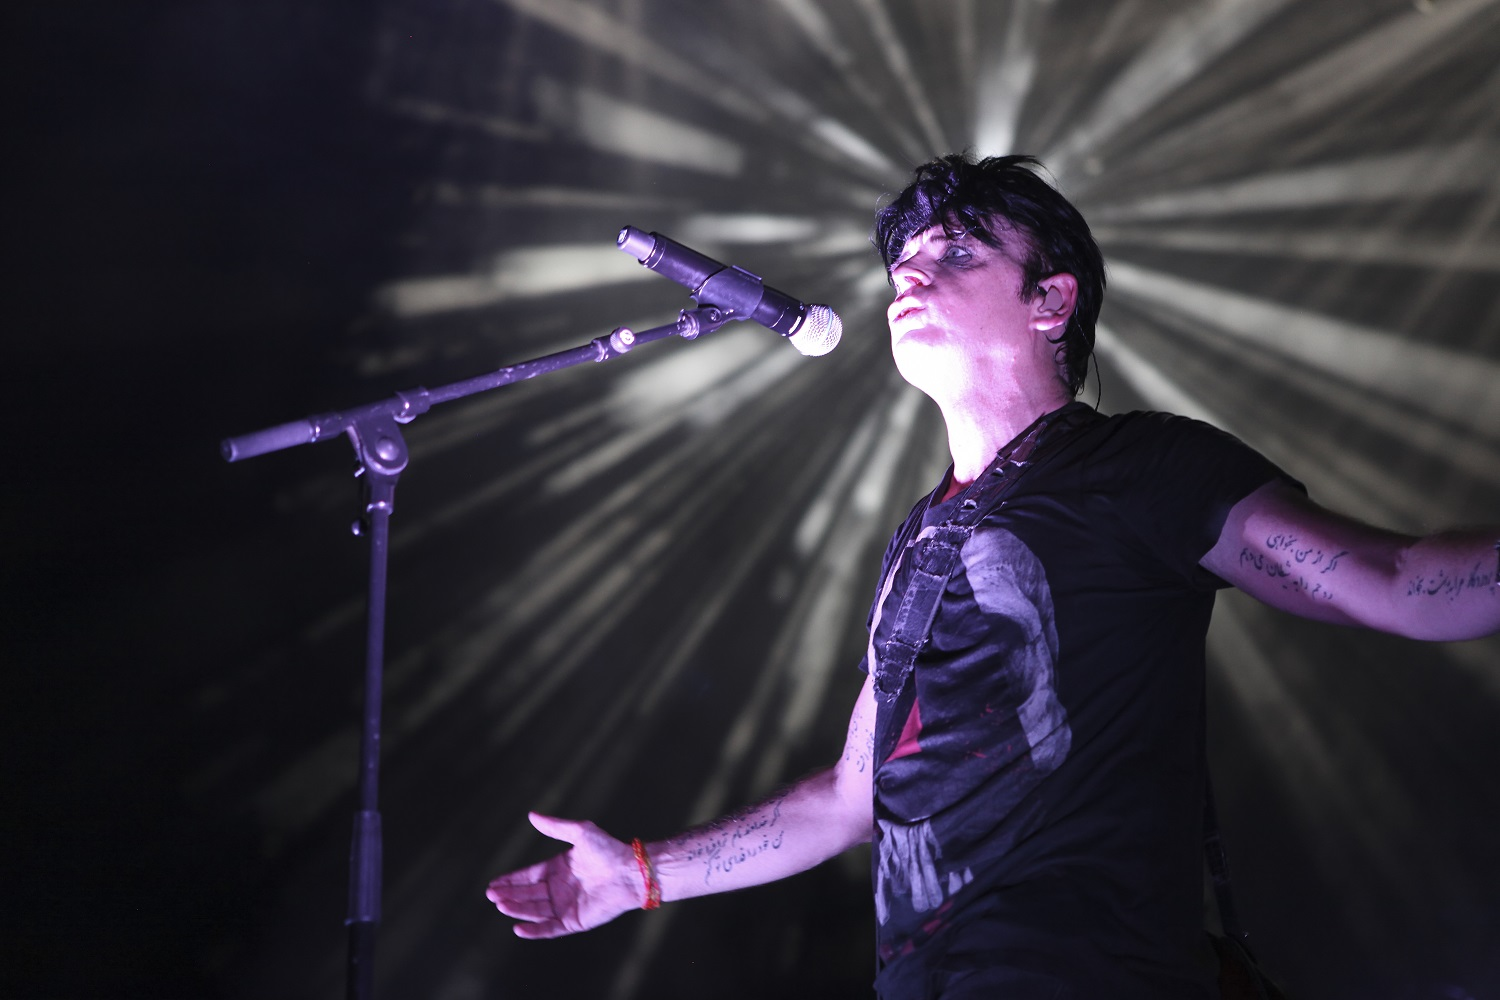 Avolites consoles and Fader Wing are a Titan solution for Gary Numan